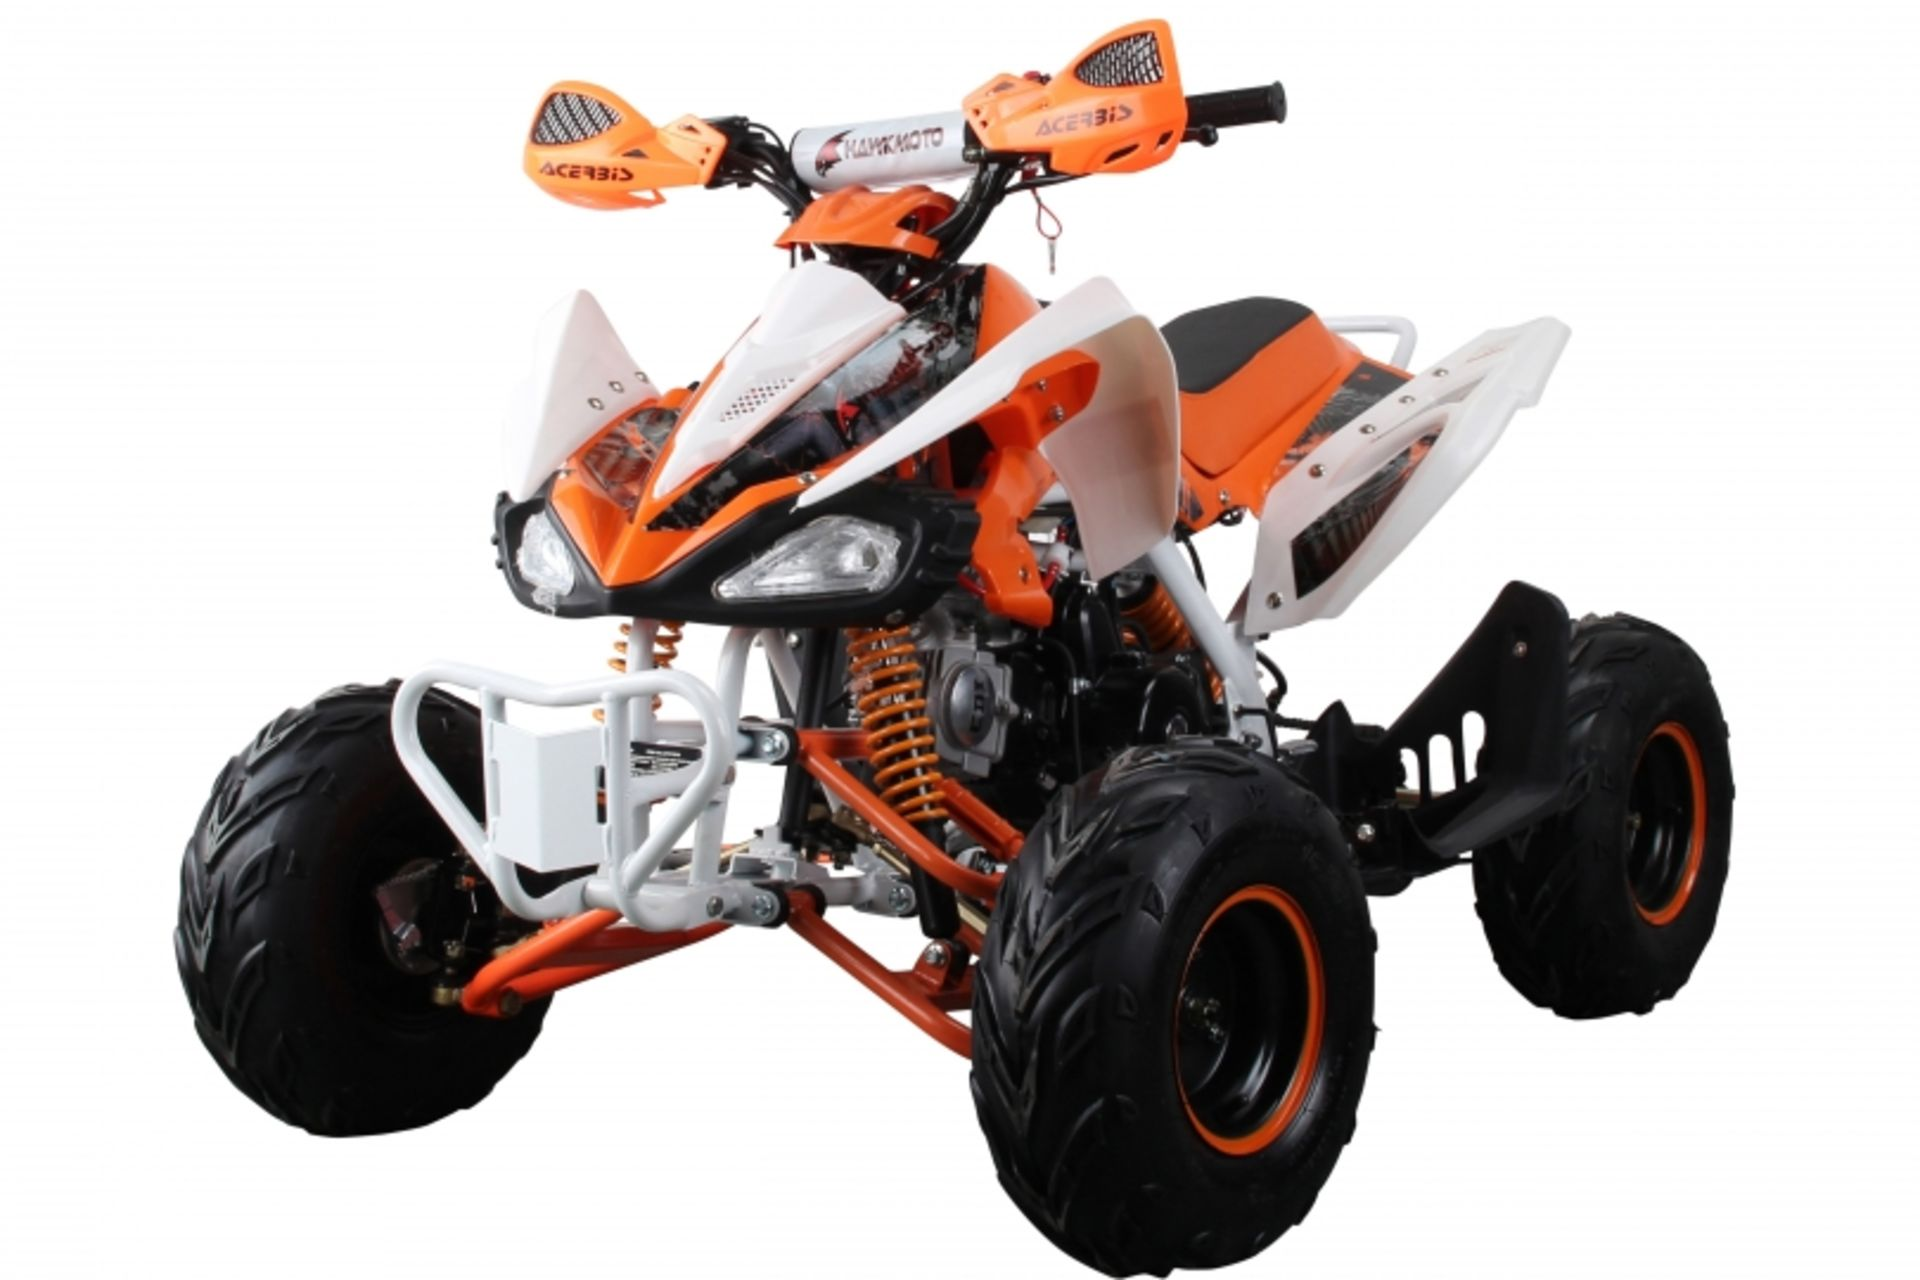 Lot 23022 - V Brand New 125cc Interceptor SV2 4 Stroke Quad Bike With Reverse Gear - Double Front Suspension/